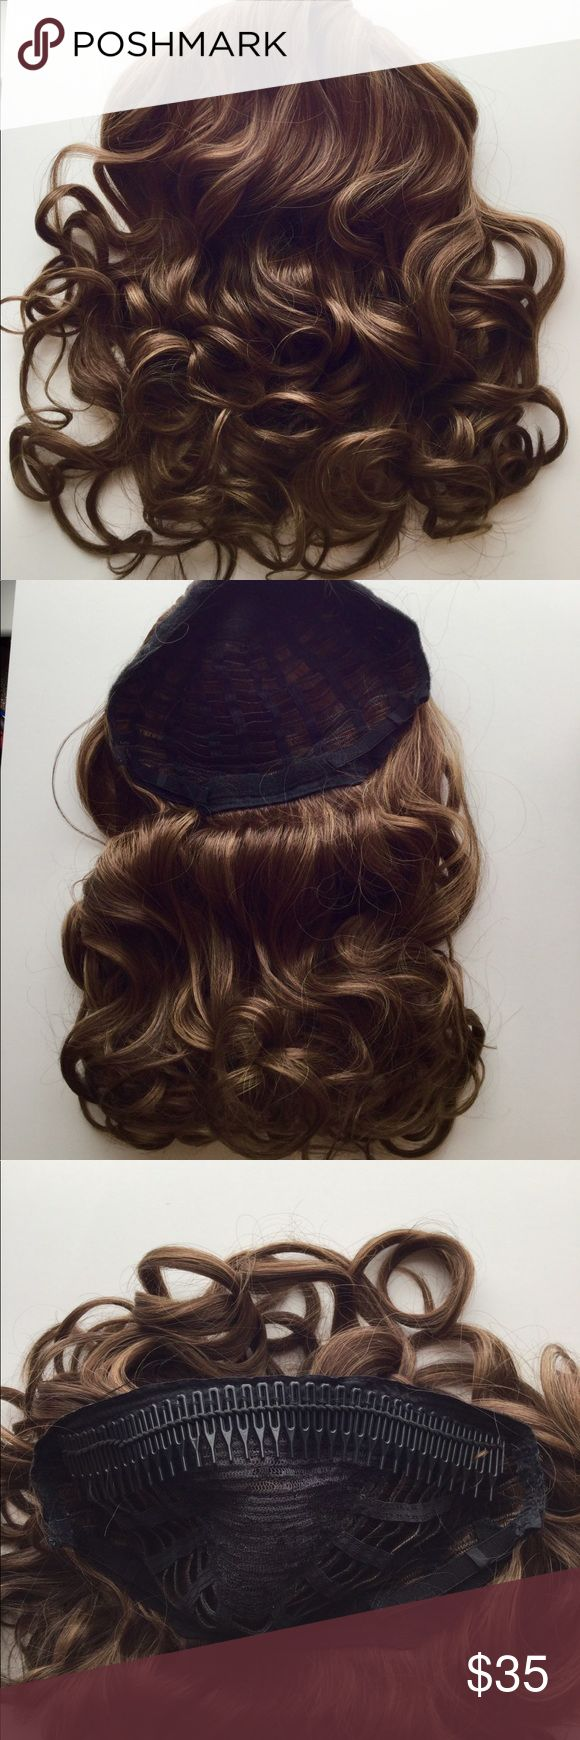 """23"""" Comb in Wavy Synthetic Headband Extension 23"""" long Comb in Half Cap Wavy Headband Extension in Medium Brown. This is a high quality custom made synthetic 1 pc hair extension by the Hair Voyager Co. It can be gently combed out for a less wavy look. Simply apply at crown of head and blend hair back over, OR comb through own hair from front and use your own headband or scarf along the edge. Very versatile! Creates volume and length in a snap! Hair Voyager Accessories Hair Accessories"""